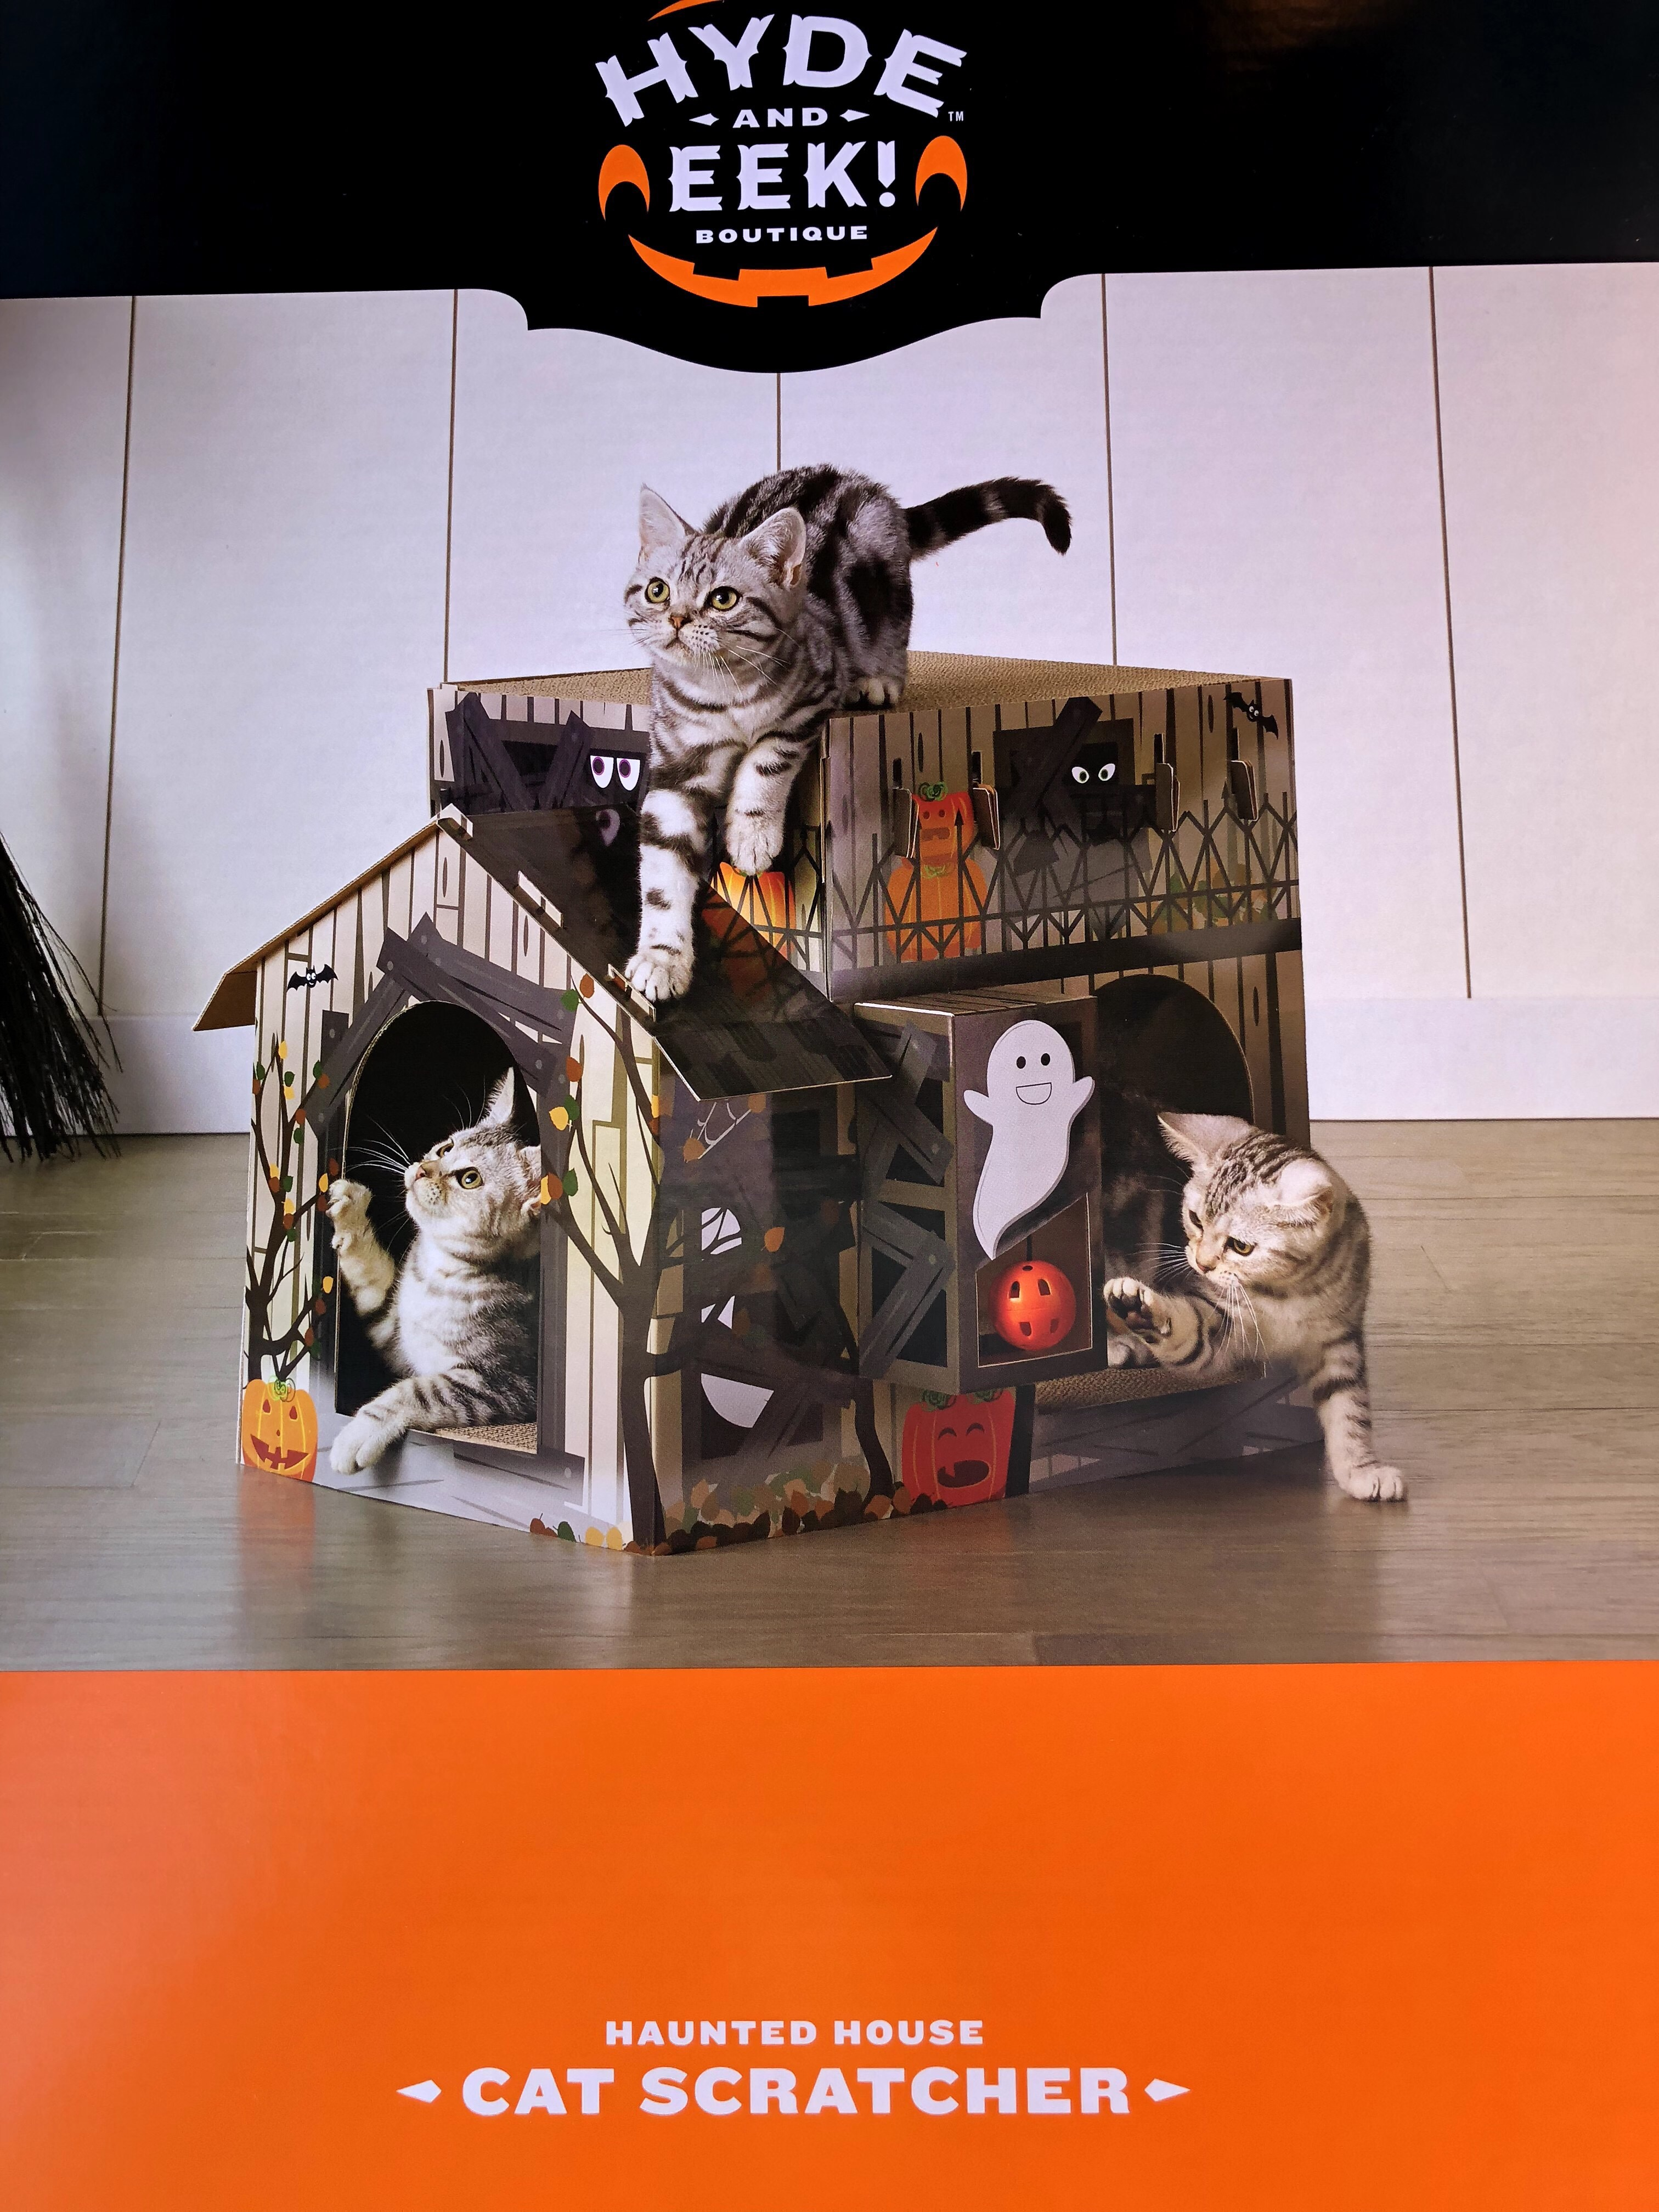 Cats playing in cardboard haunted house spooky meow Monday